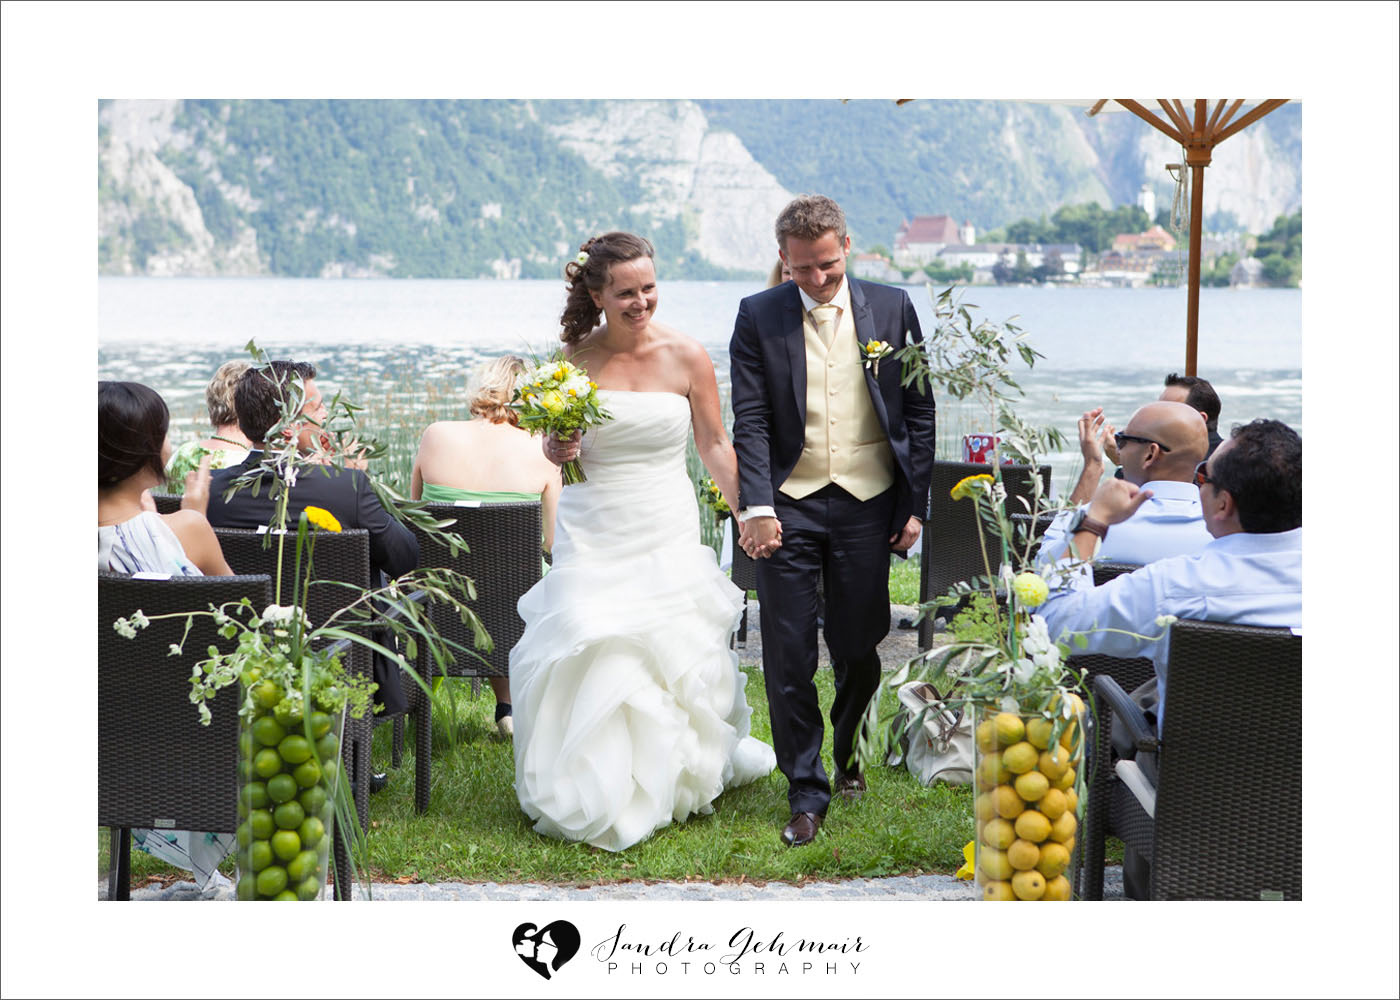 032_heiraten_am_see_spitzvilla_sandra_gehmair